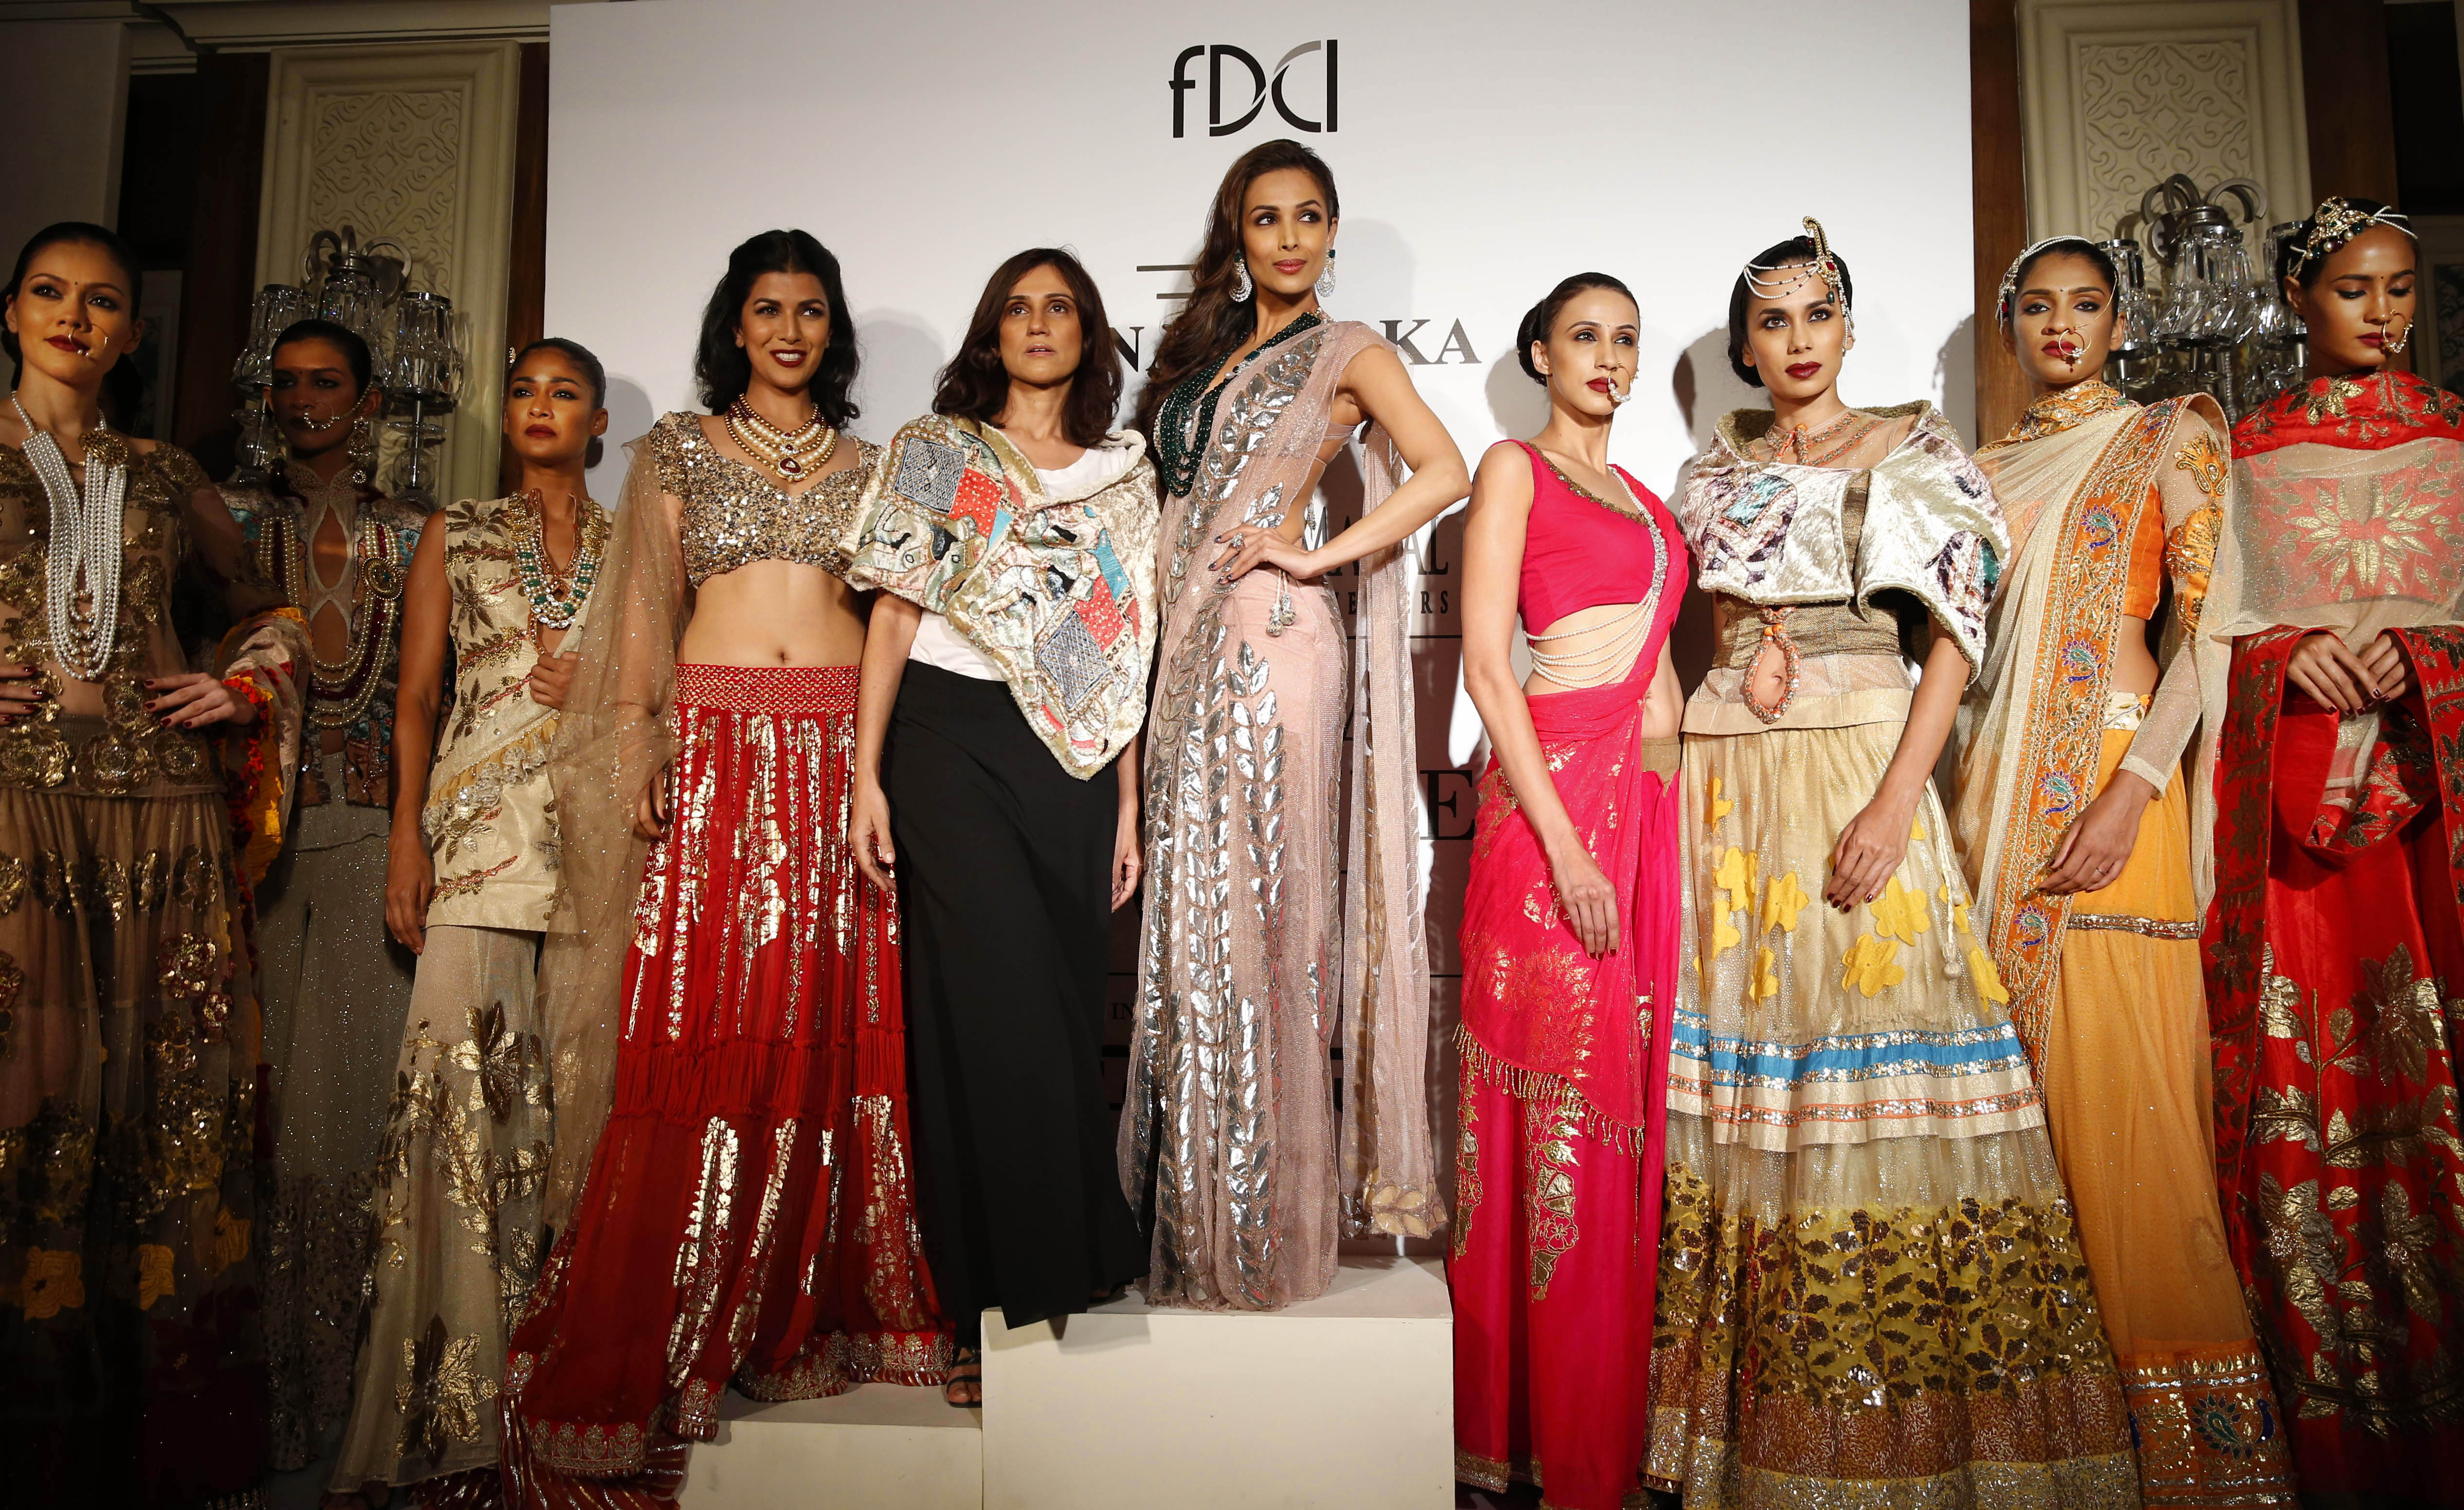 ndian actor Malaika Arora, center right, and designer Rina Dhaka,center left, pose with models displaying dresses created by Dhaka, at the India Couture Week held by Fashion Design Council of India, in New Delhi, India, Wednesday, July 16, 2014. (AP Photo/Saurabh Das)